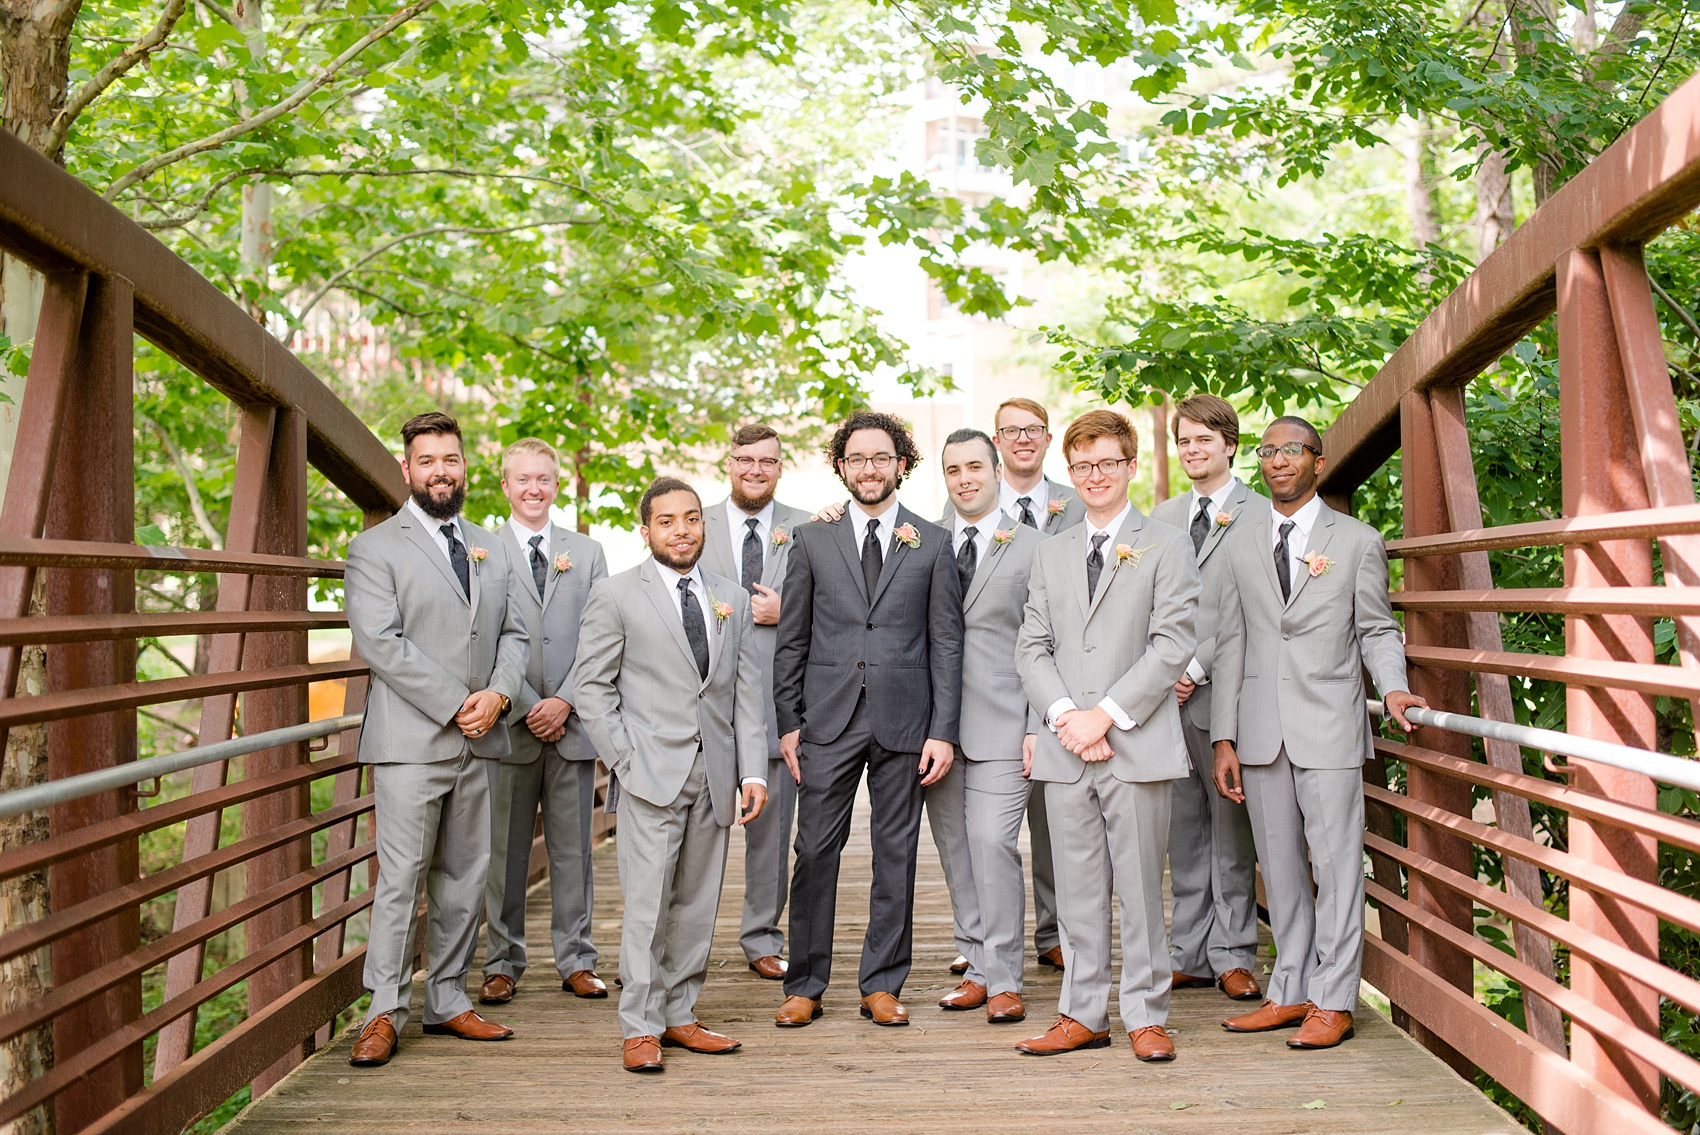 Mikkel Paige Photography photos from a wedding in Durham, North Carolina. Casual picture of the groomsmen on a rustic bridge downtown.